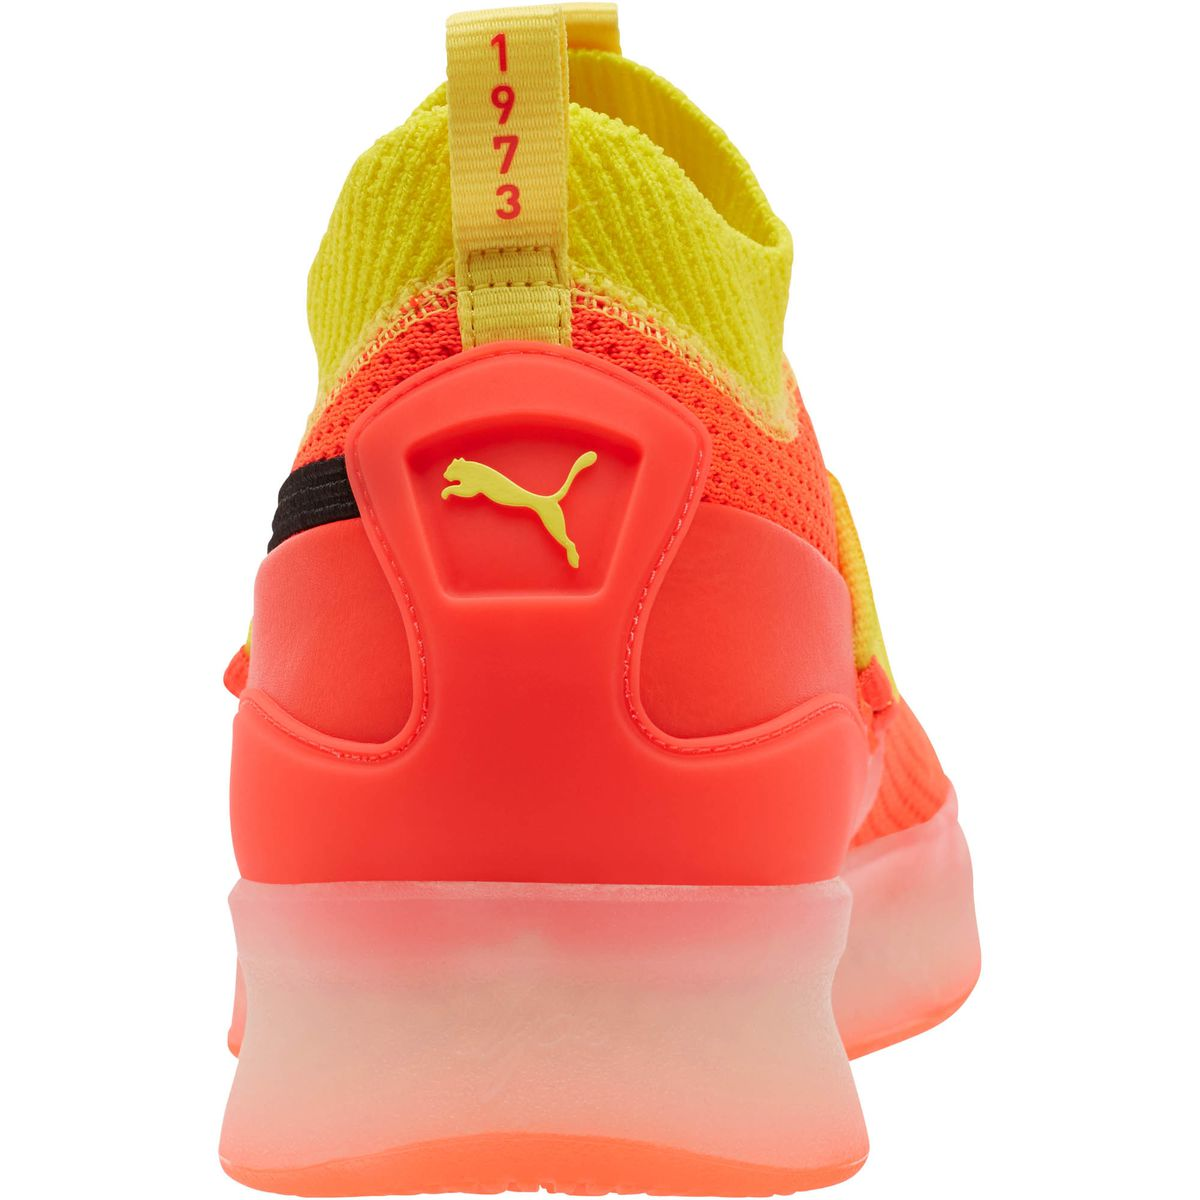 innovative design 7a542 be6e9 Puma's Clyde Court Disrupt basketball shoe drops just in ...